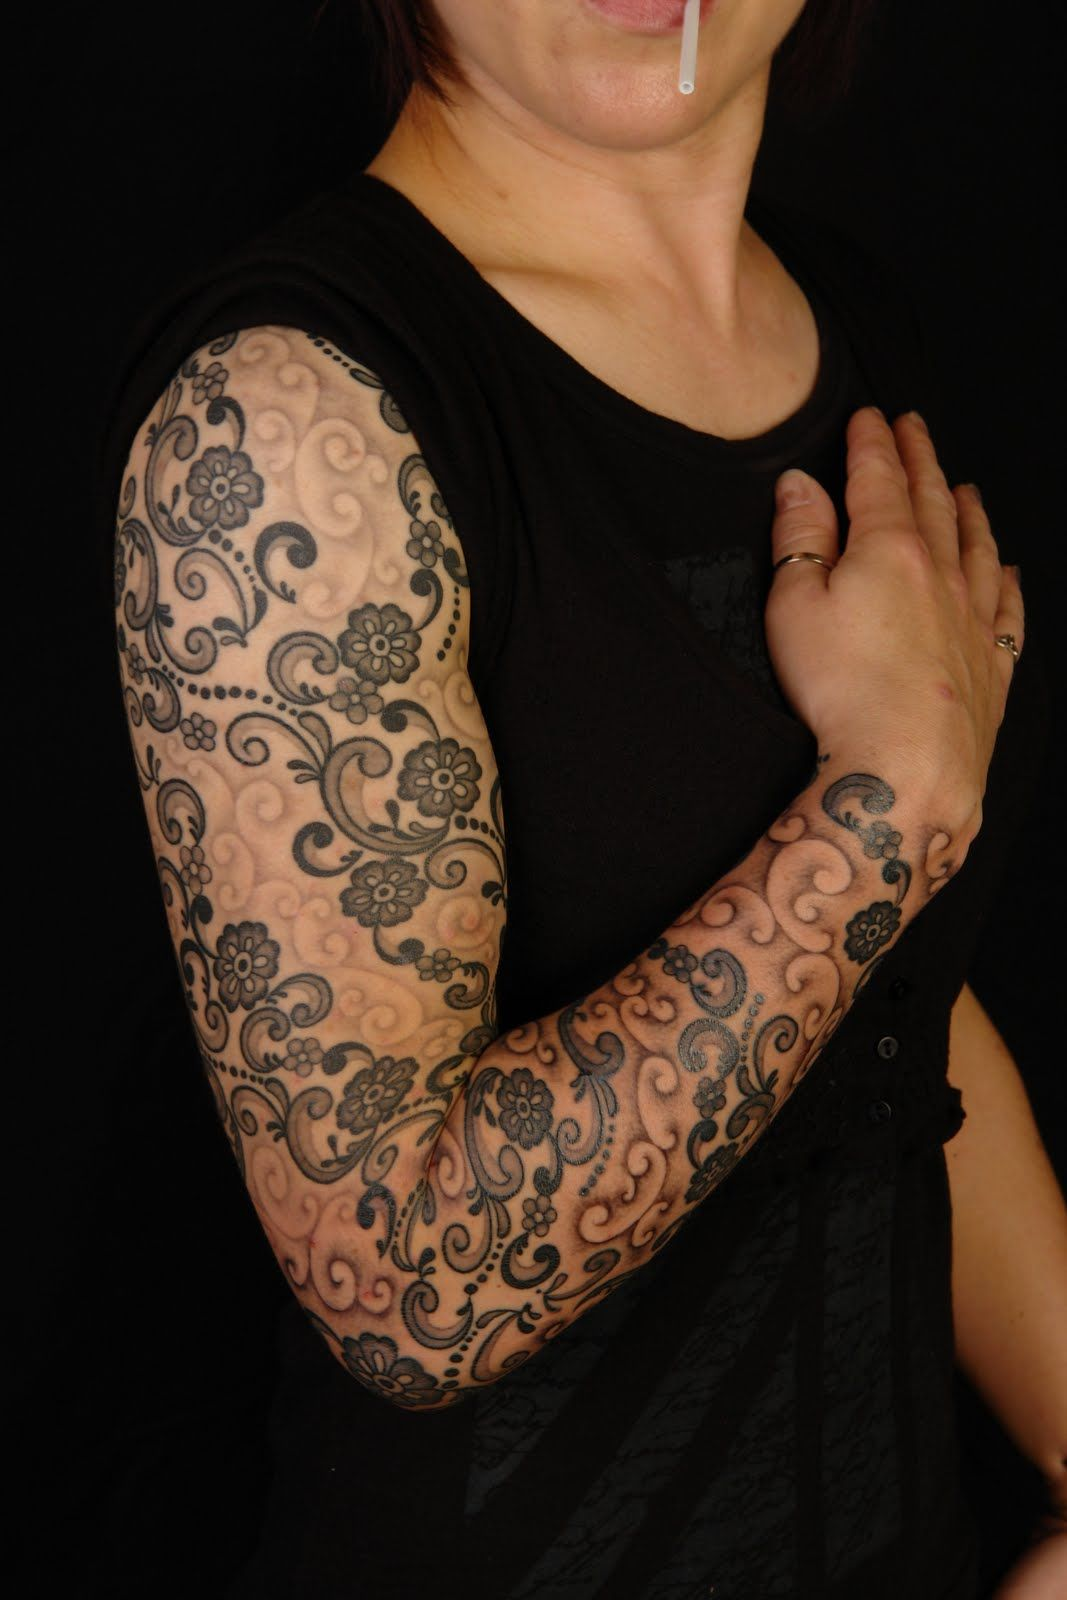 White Lace Tattoo Shoulder Lace Tattoo Lace Sleeve Tattoos Lace Tattoo Tattoo Sleeve Filler